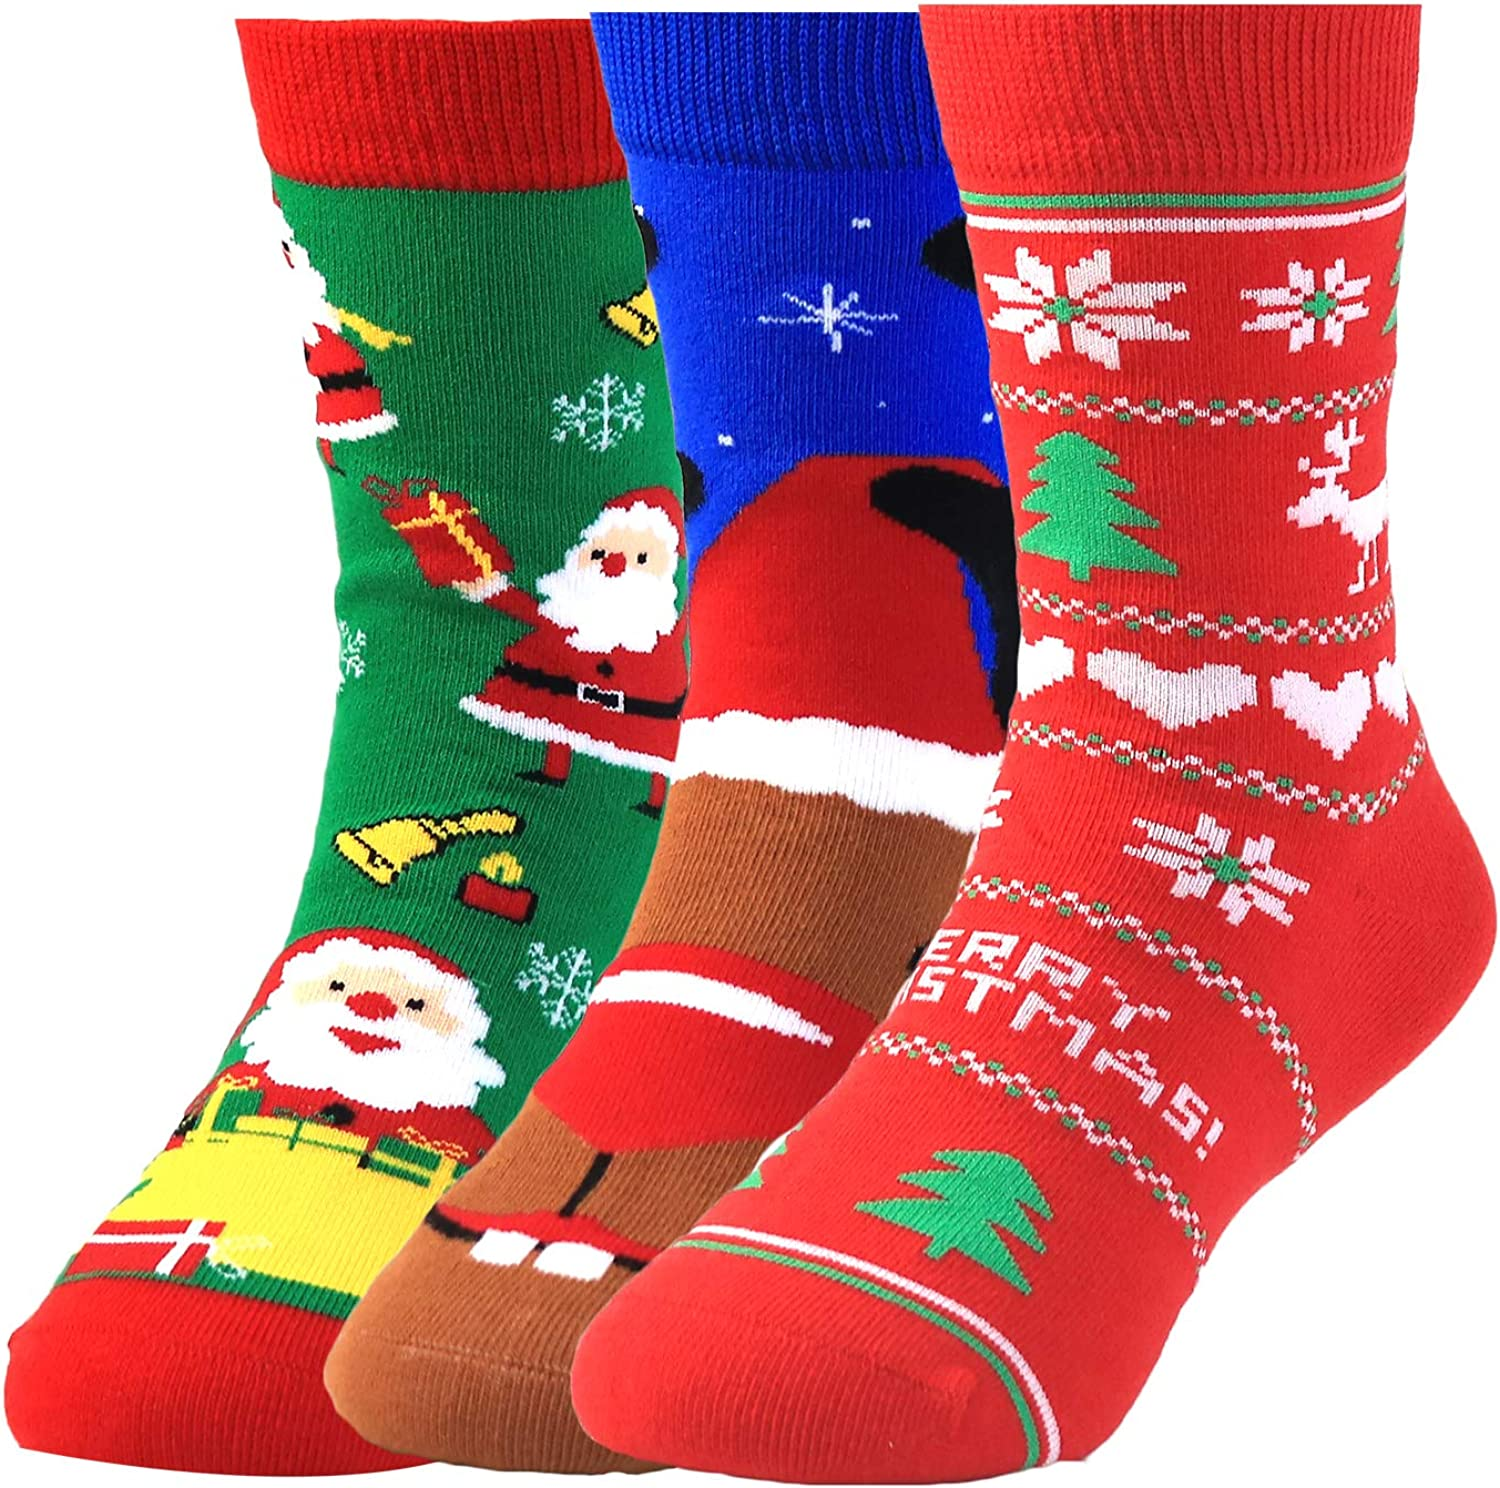 Kids Christmas Novelty Fun Colorful Pattern Seamless Combed Cotton Dress Socks for Boys Pack of 3